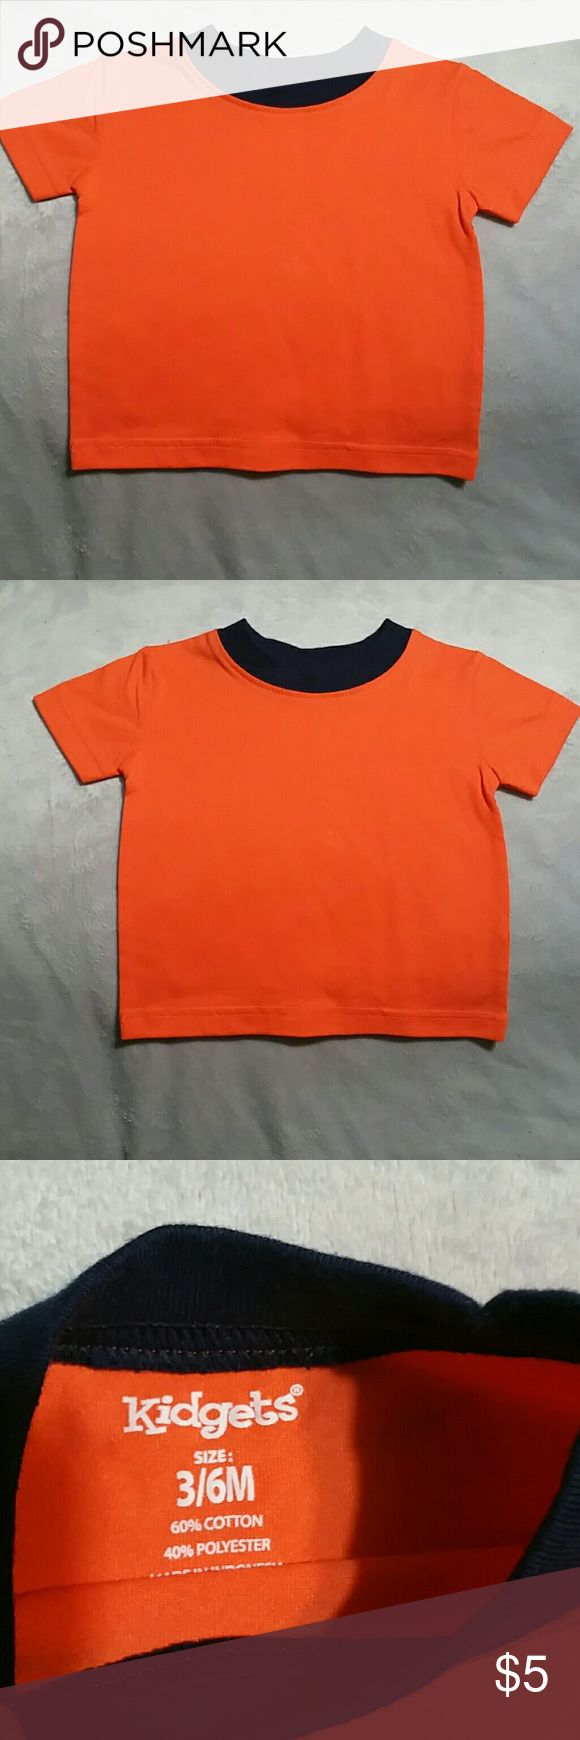 Orange T-shirt Plain Orange shirt sleeve T-shirt with Navy Blue around the collar . This item is NEW without the tags . Size 3/6 months. Kidgets Shirts & Tops Tees - Short Sleeve